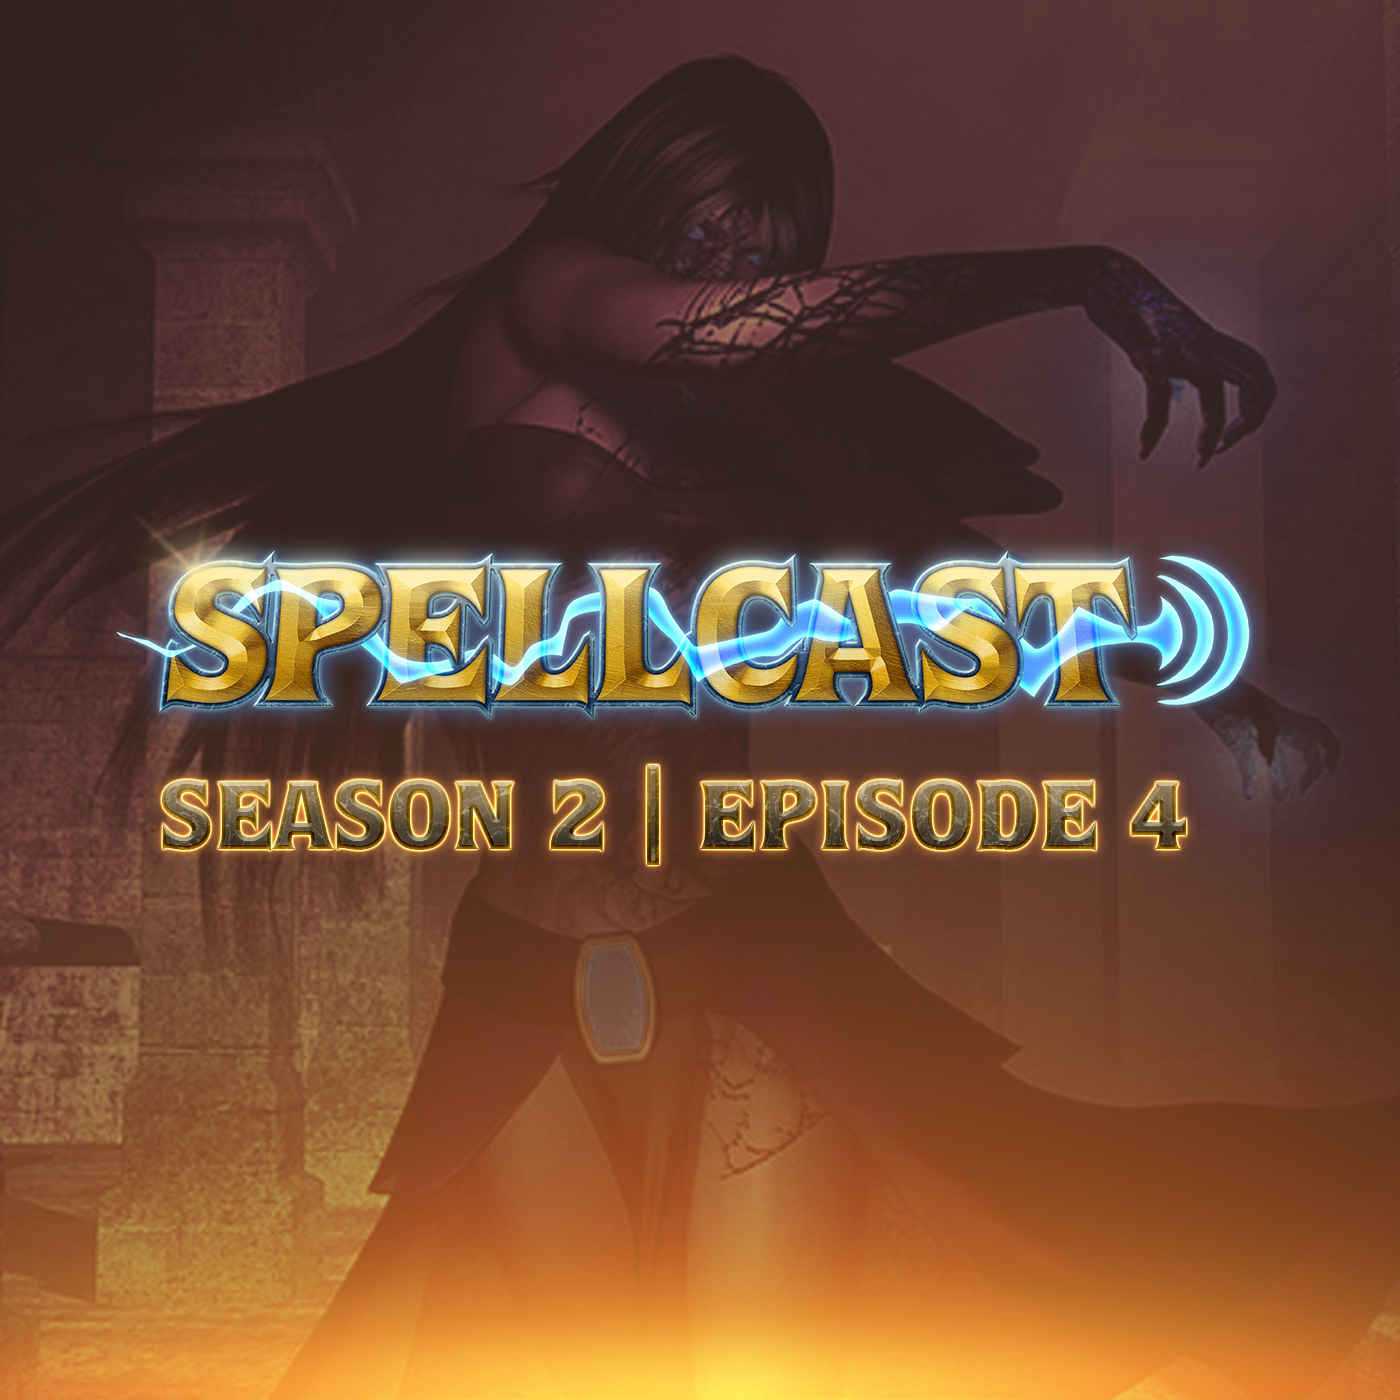 Spellcast Season 2 Episode 4